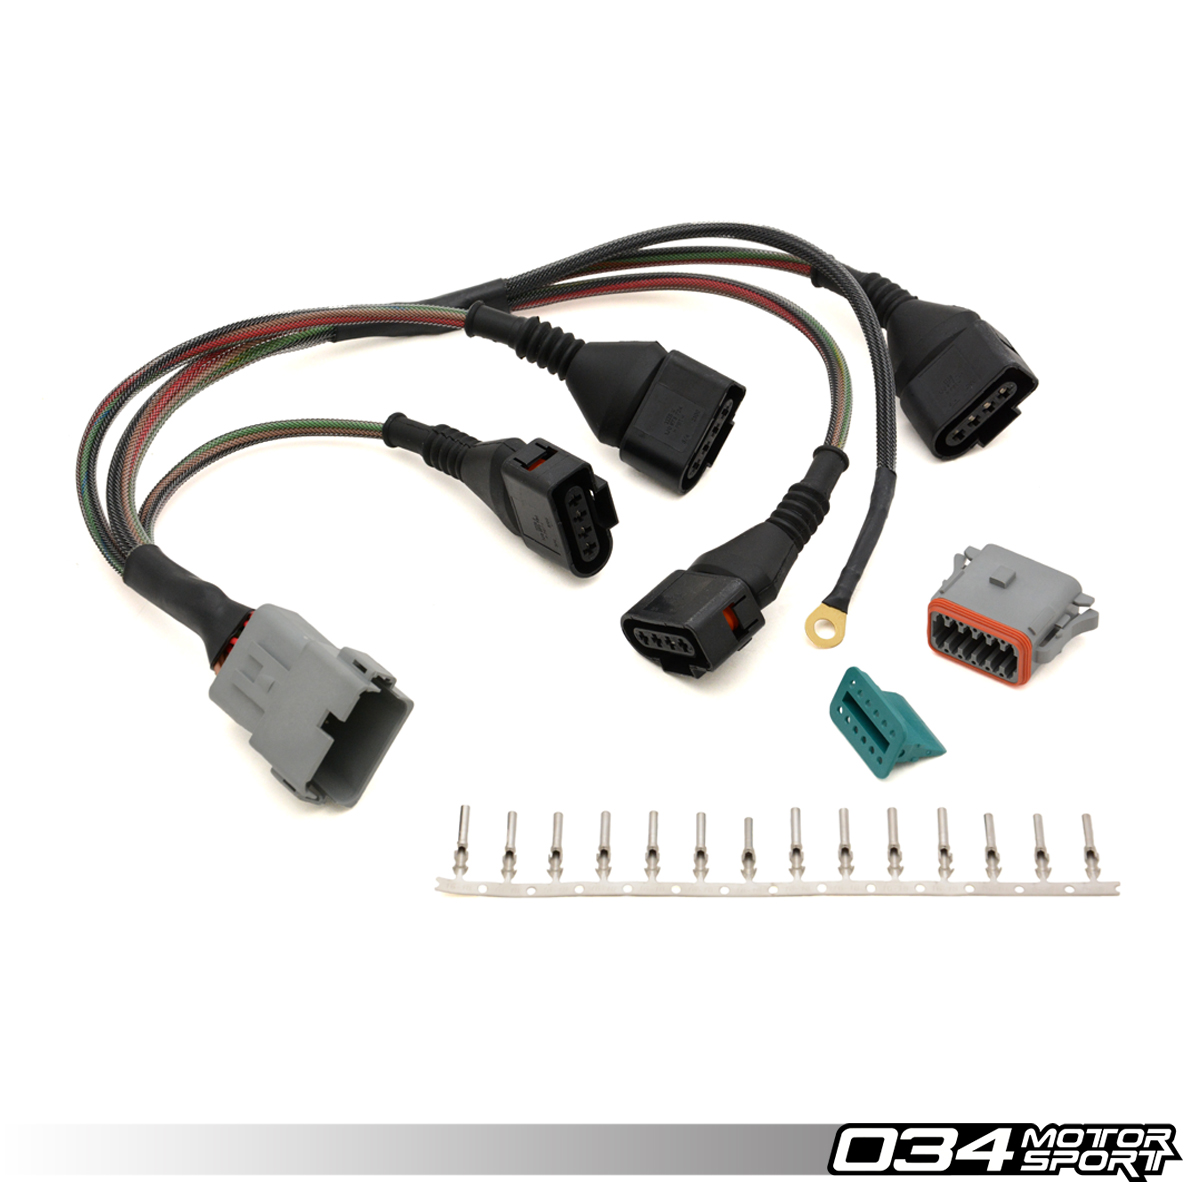 repair update harness, audi volkswagen 1 8t with 4 wire coils 034 vw jetta ignition coil repair update harness, audi volkswagen 1 8t with 4 wire coils 034 701 0004 034motorsport